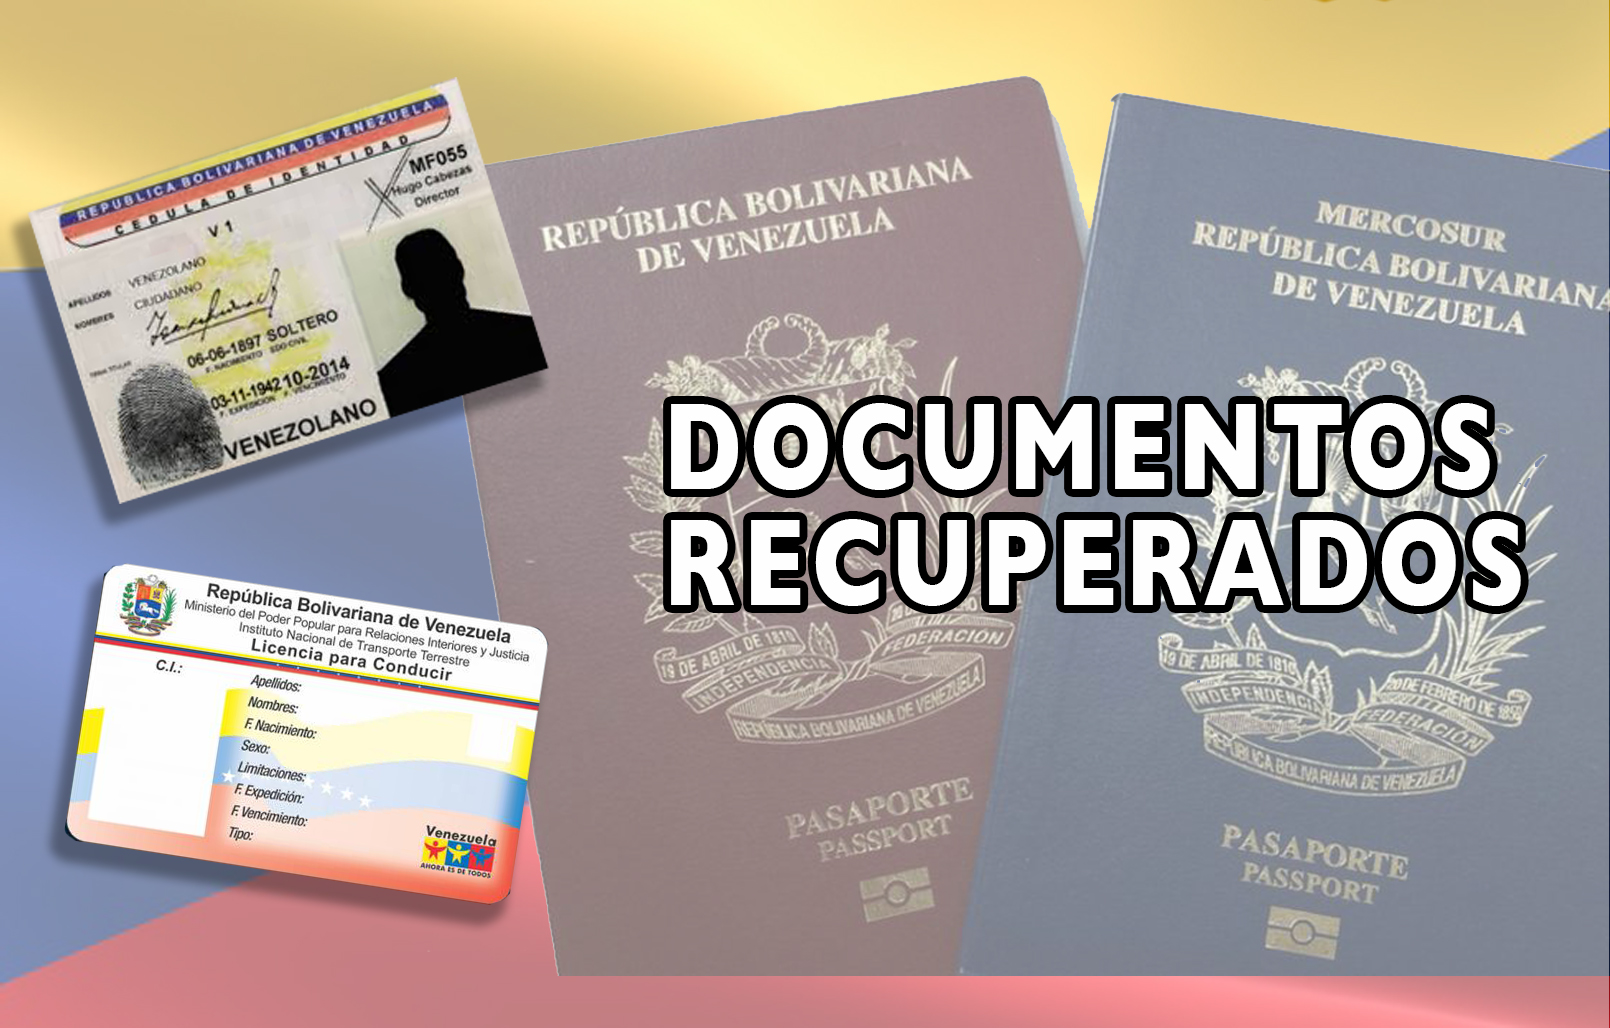 Documentos recuperados